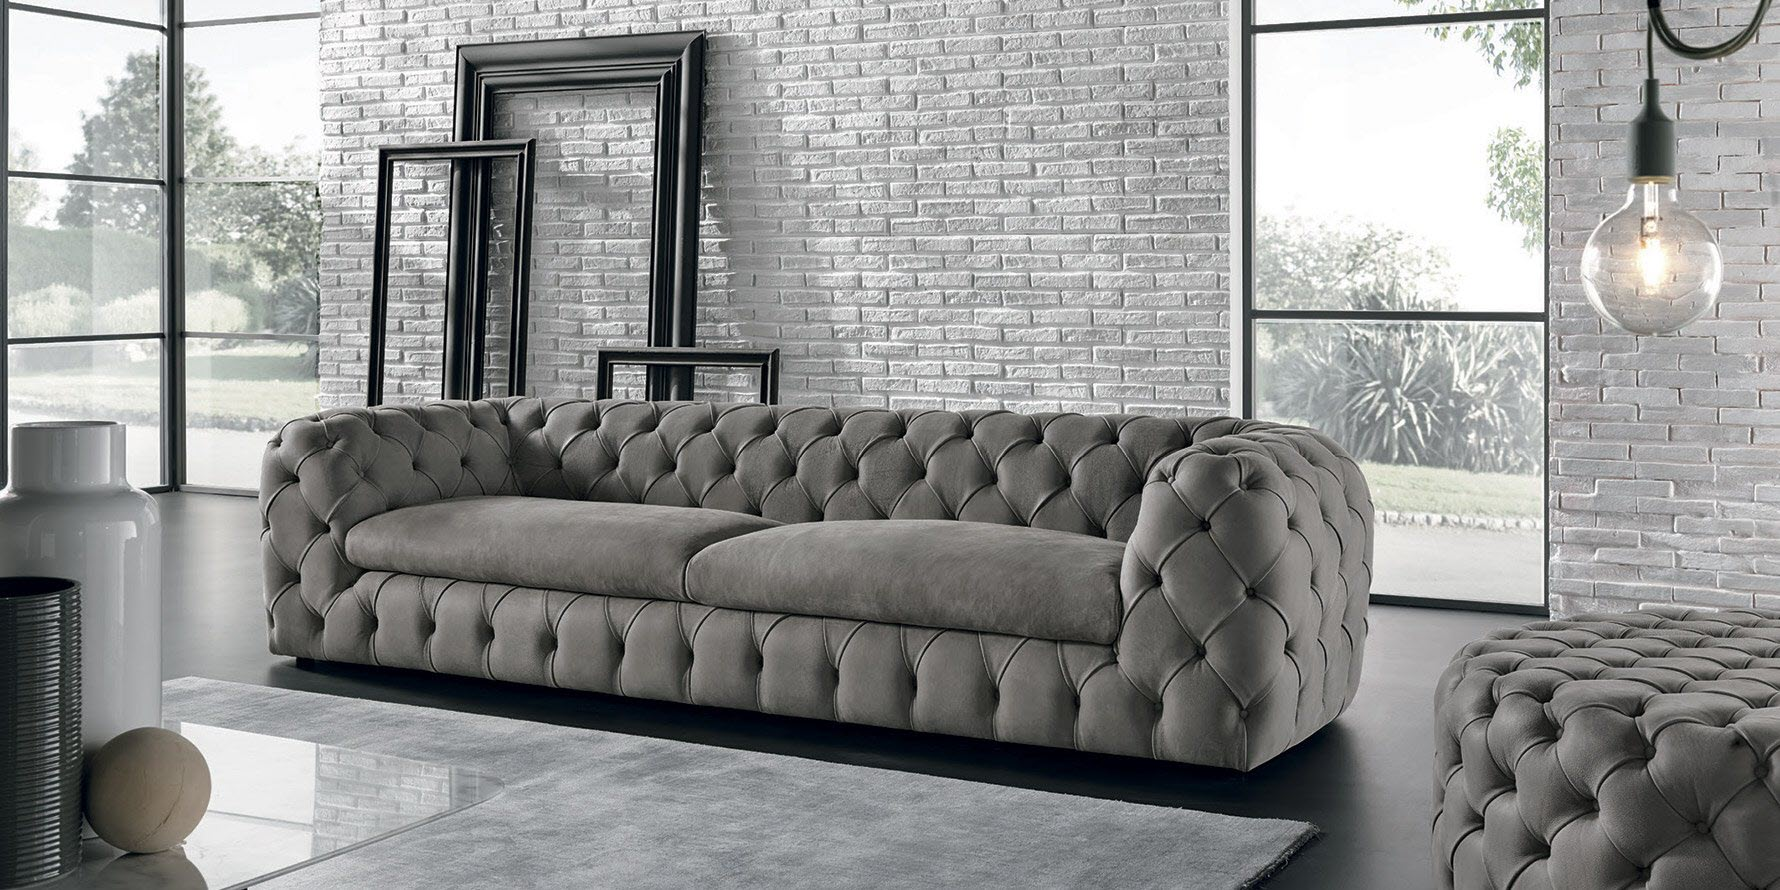 Things To Purposely Look For While Purchasing Luxury Sofas In Sydney